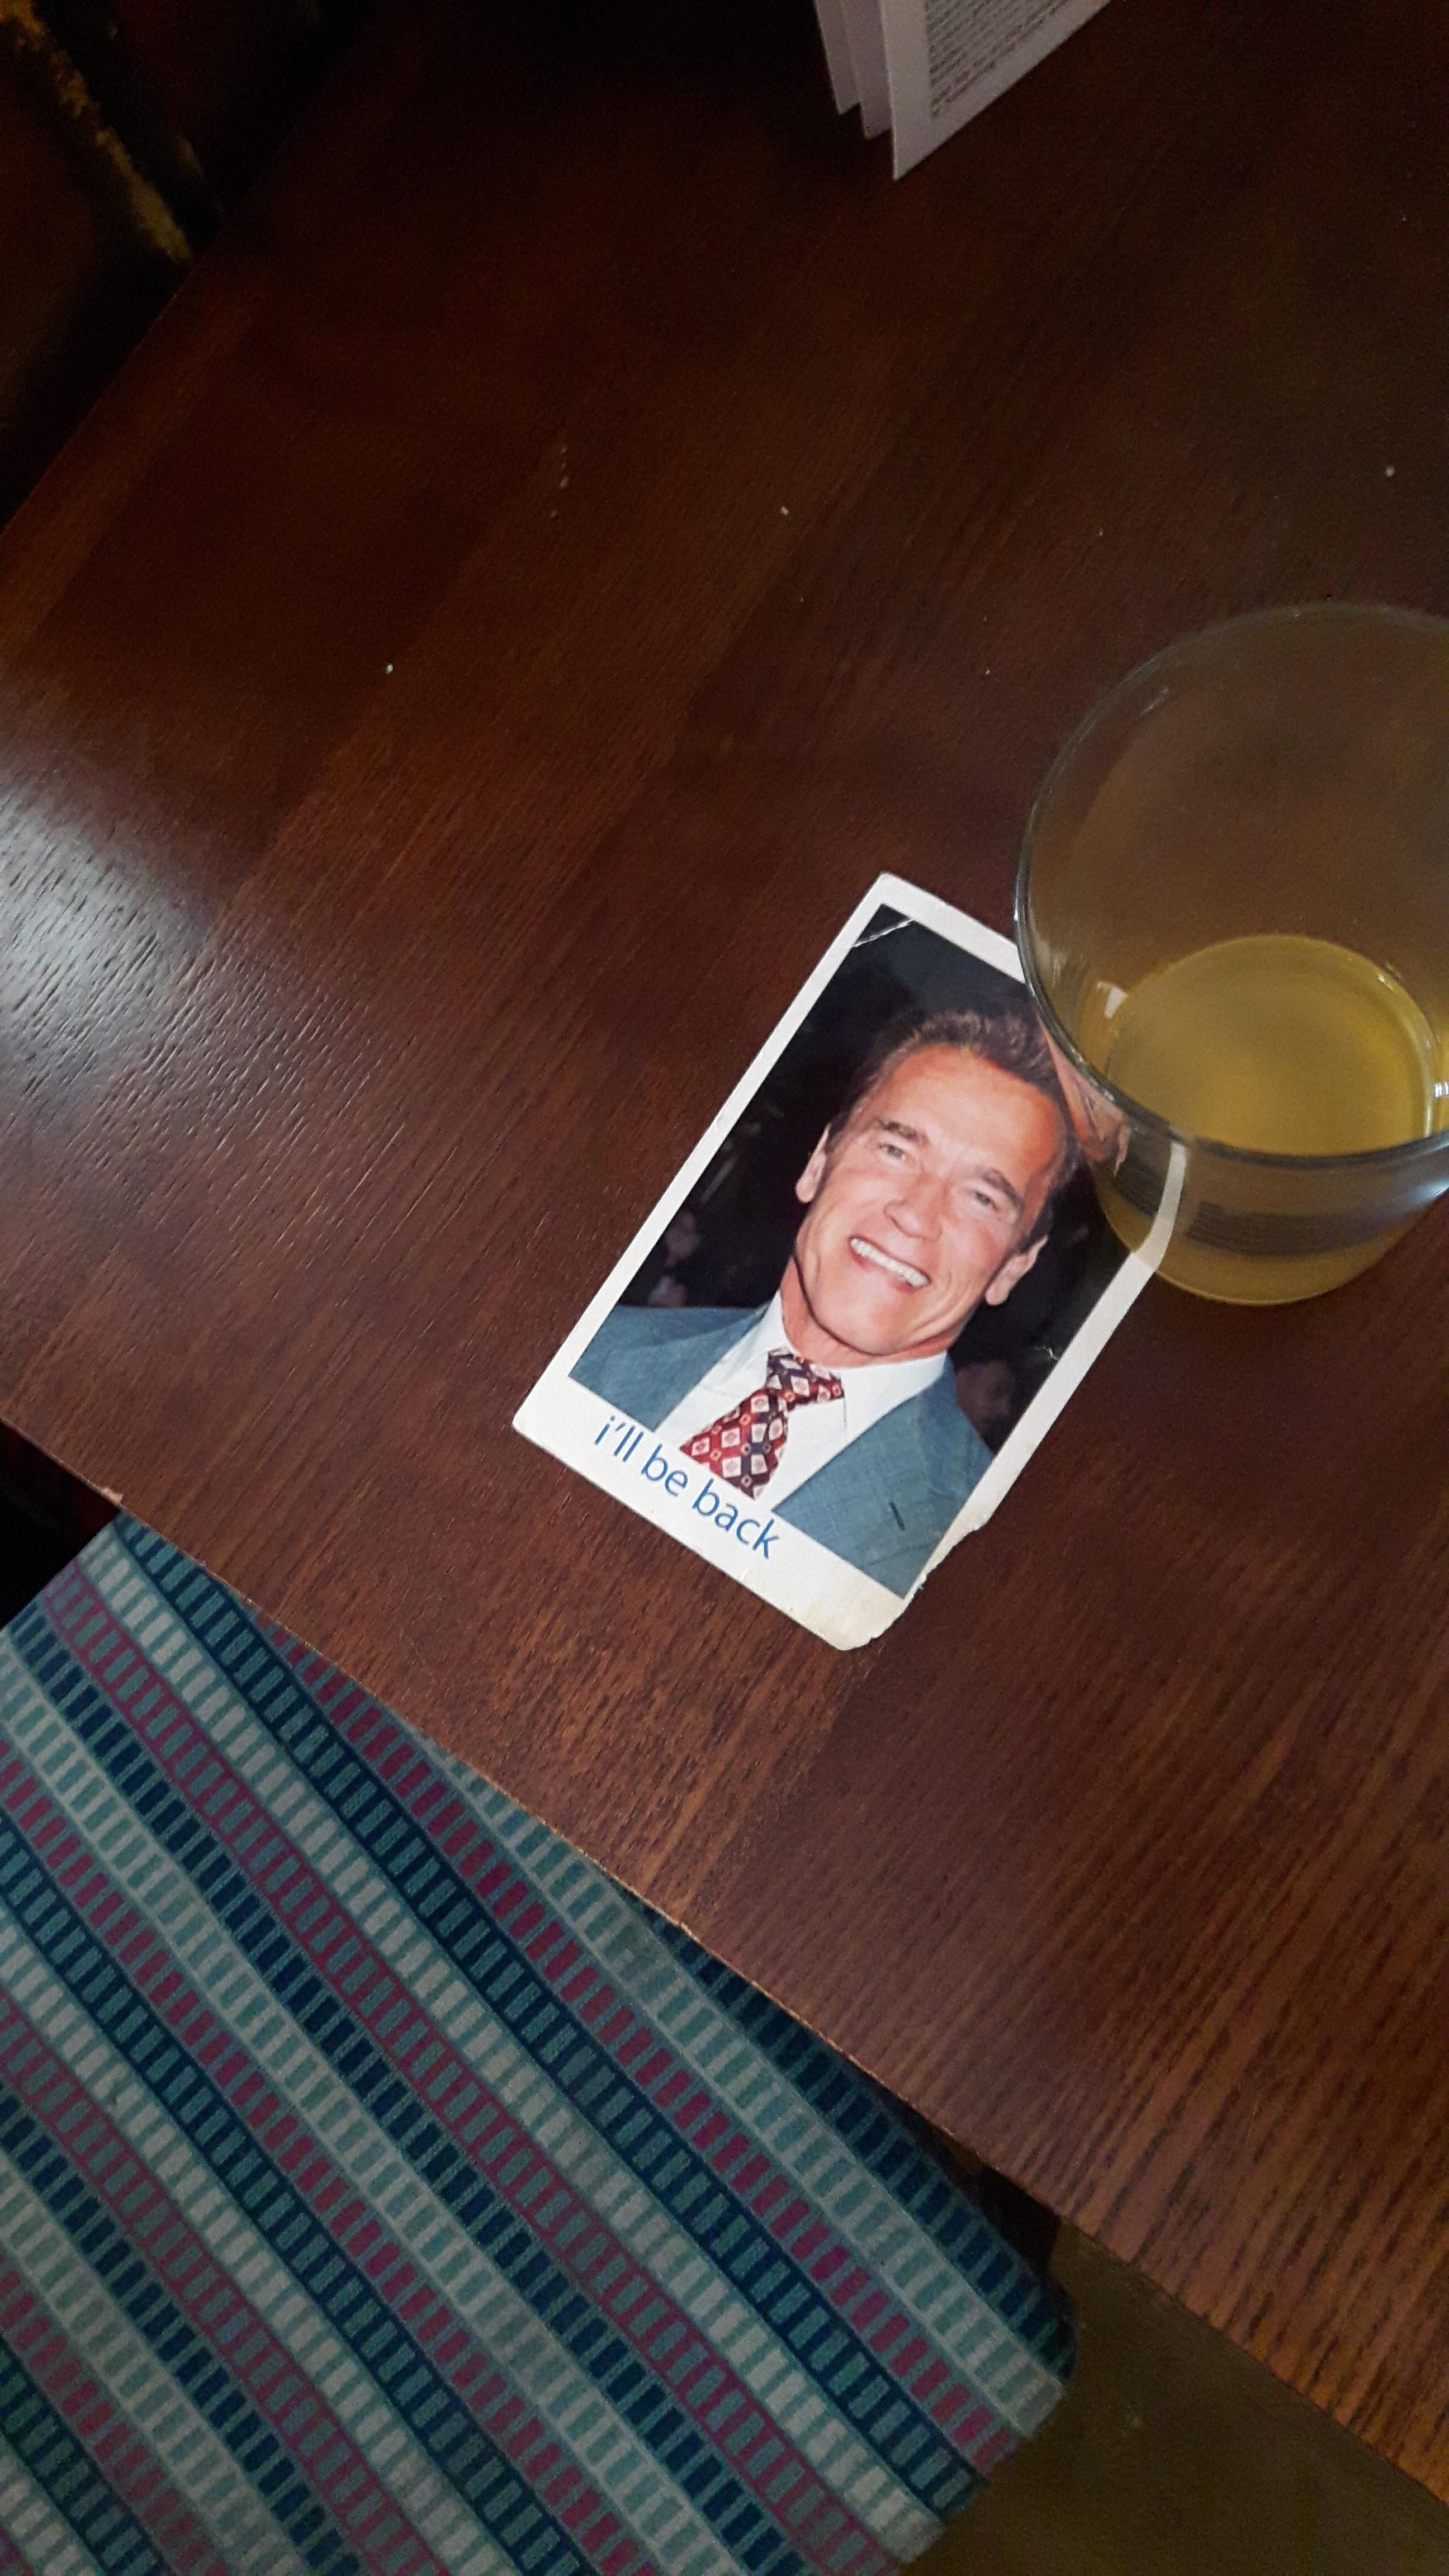 A man in the pub went to the bathroom and left Arnold Swartzenegger to save his seat.